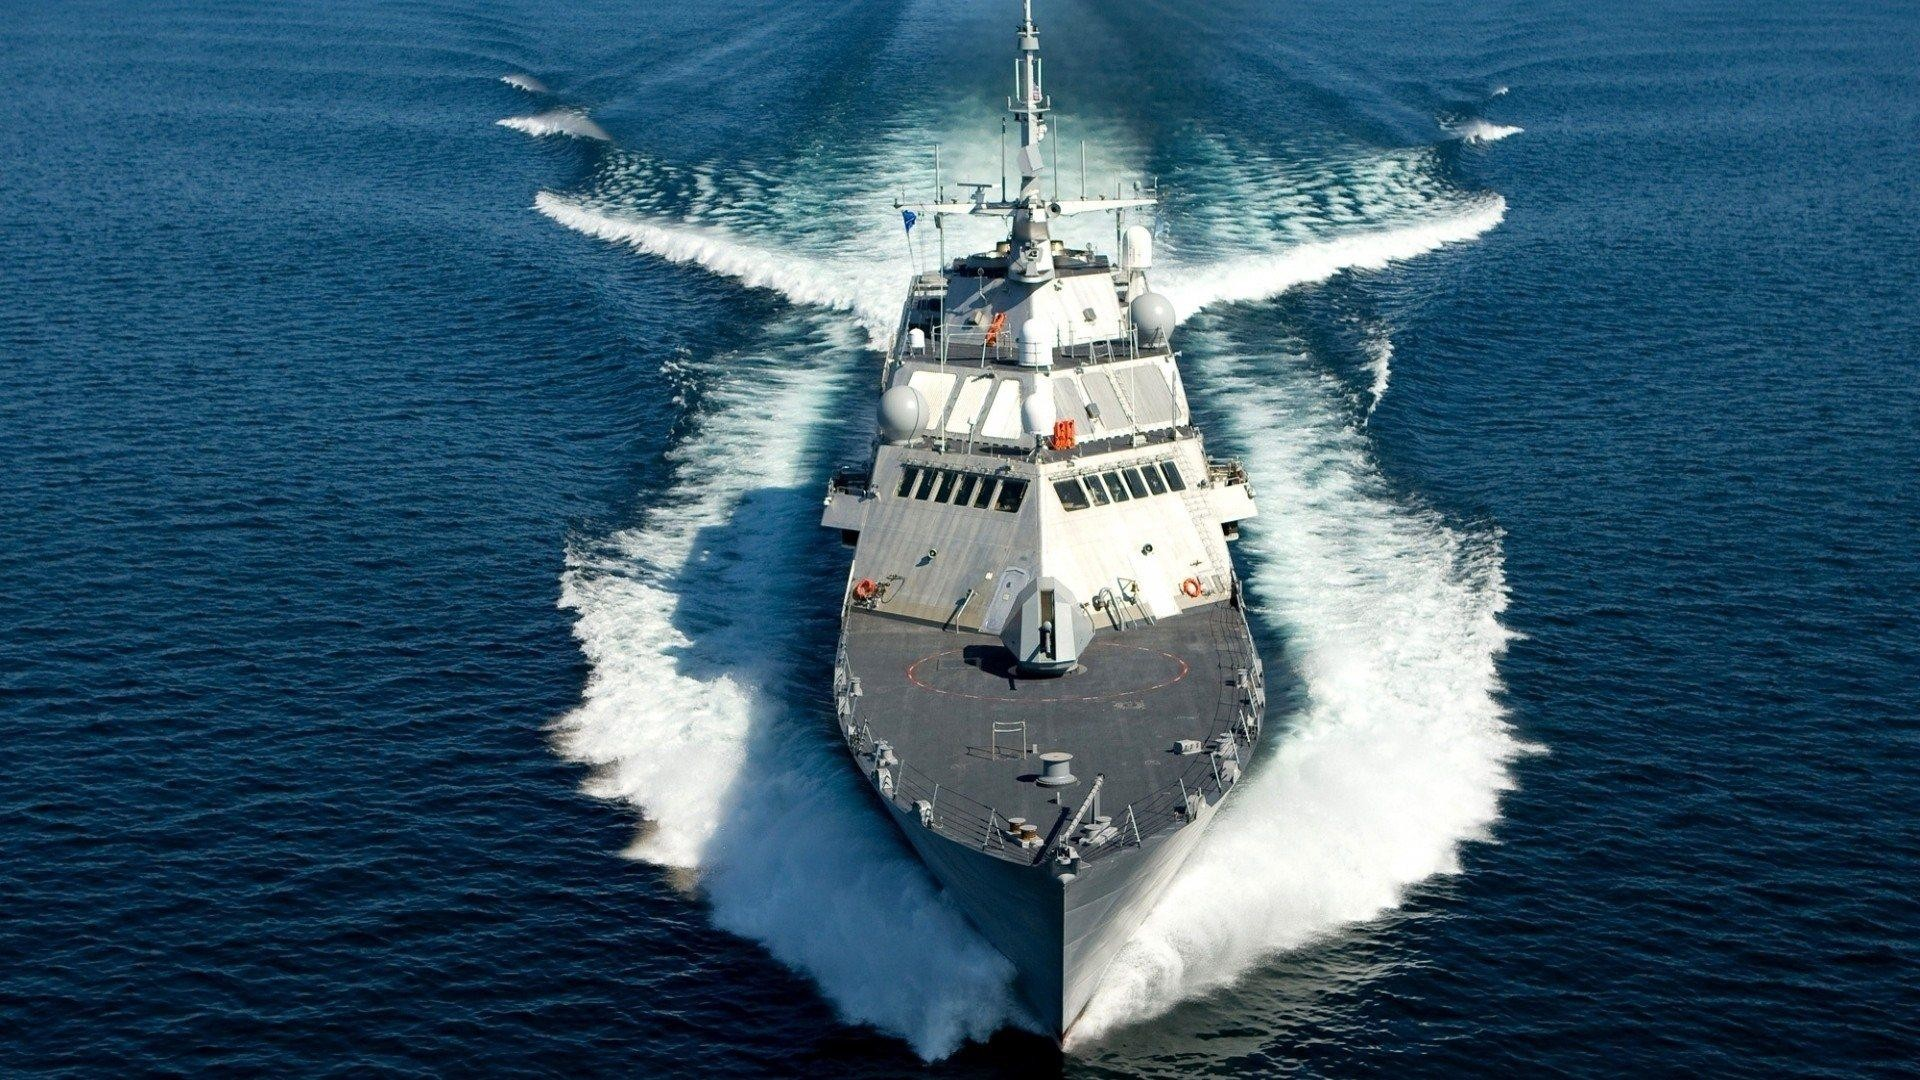 1920x1080 Navy Ship Wallpapers (35 Wallpapers)